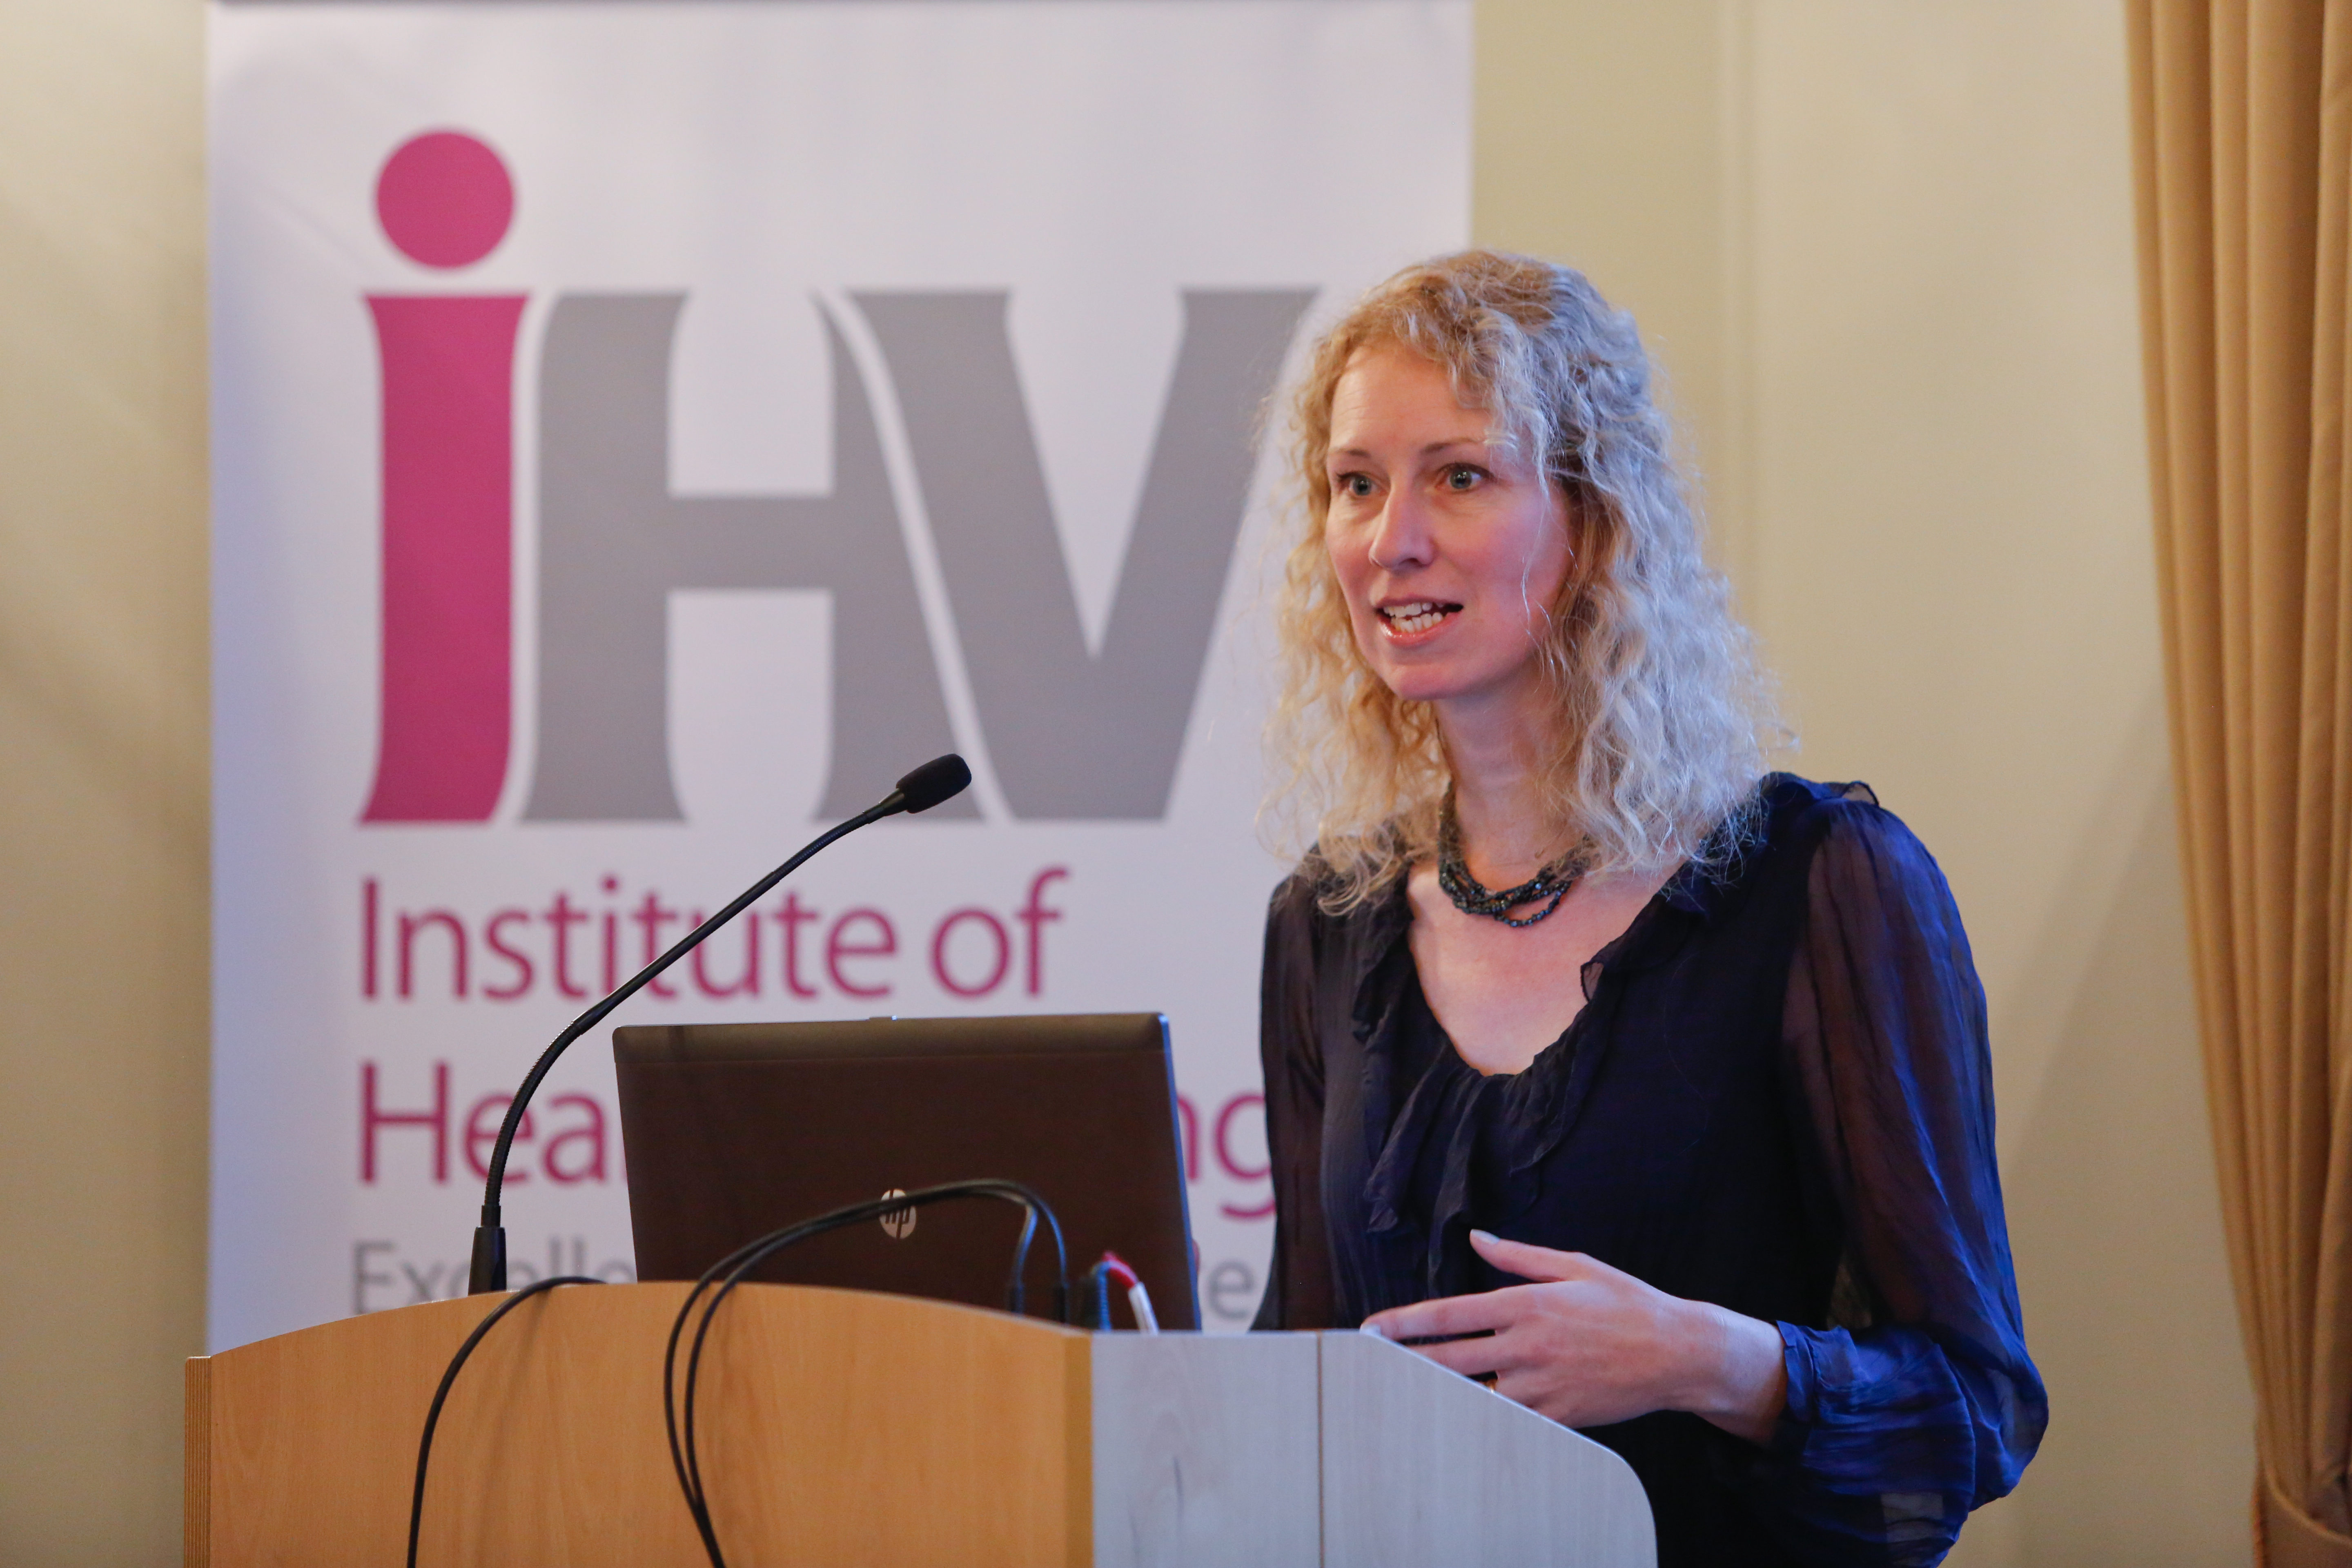 iHV Chair, Sally Russell